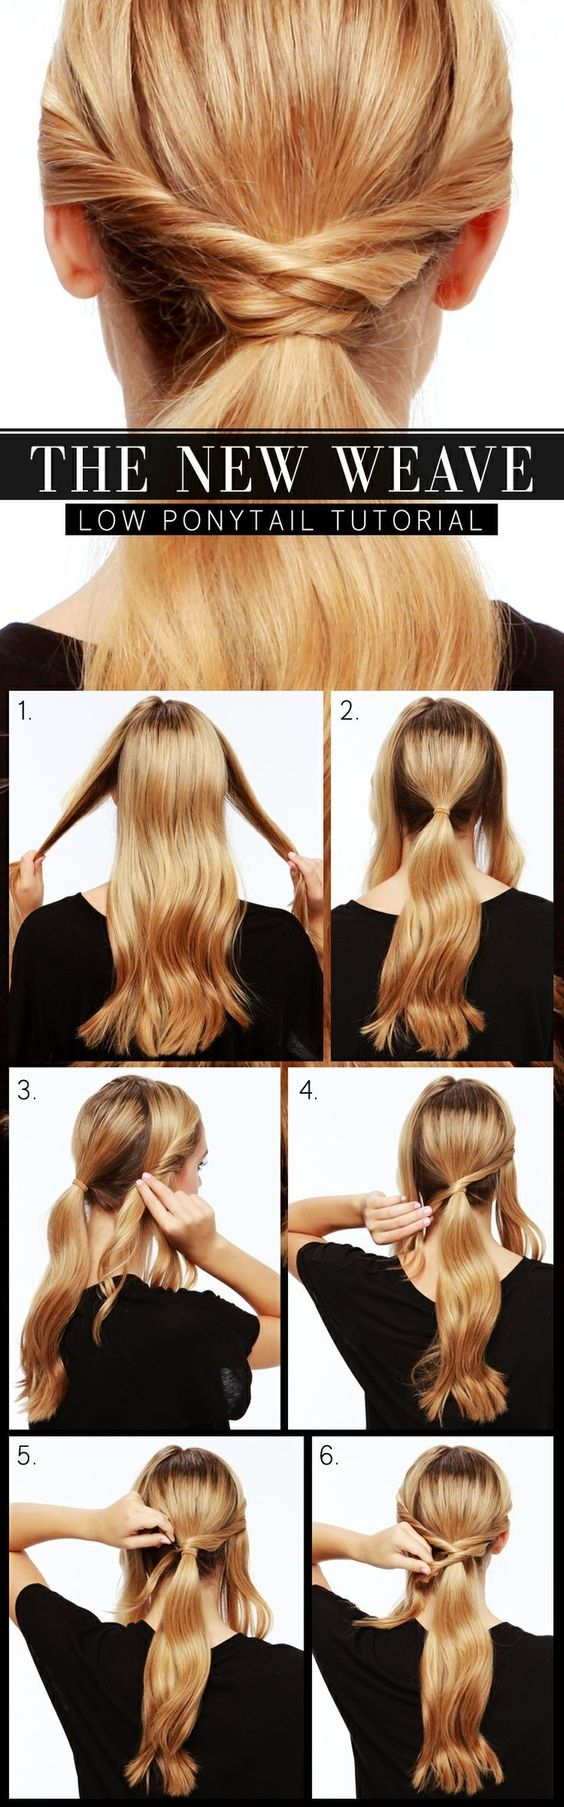 Sometimes we desire to upgrade our hairstyle and try out some new and cute hairstyle. As far as I am concerned, ponytail is perfect for summer. There are a lot of ways to style a ponytail and people consider it infinitely versatile. For example you can create it textured, straight, high, low, etc, as you …